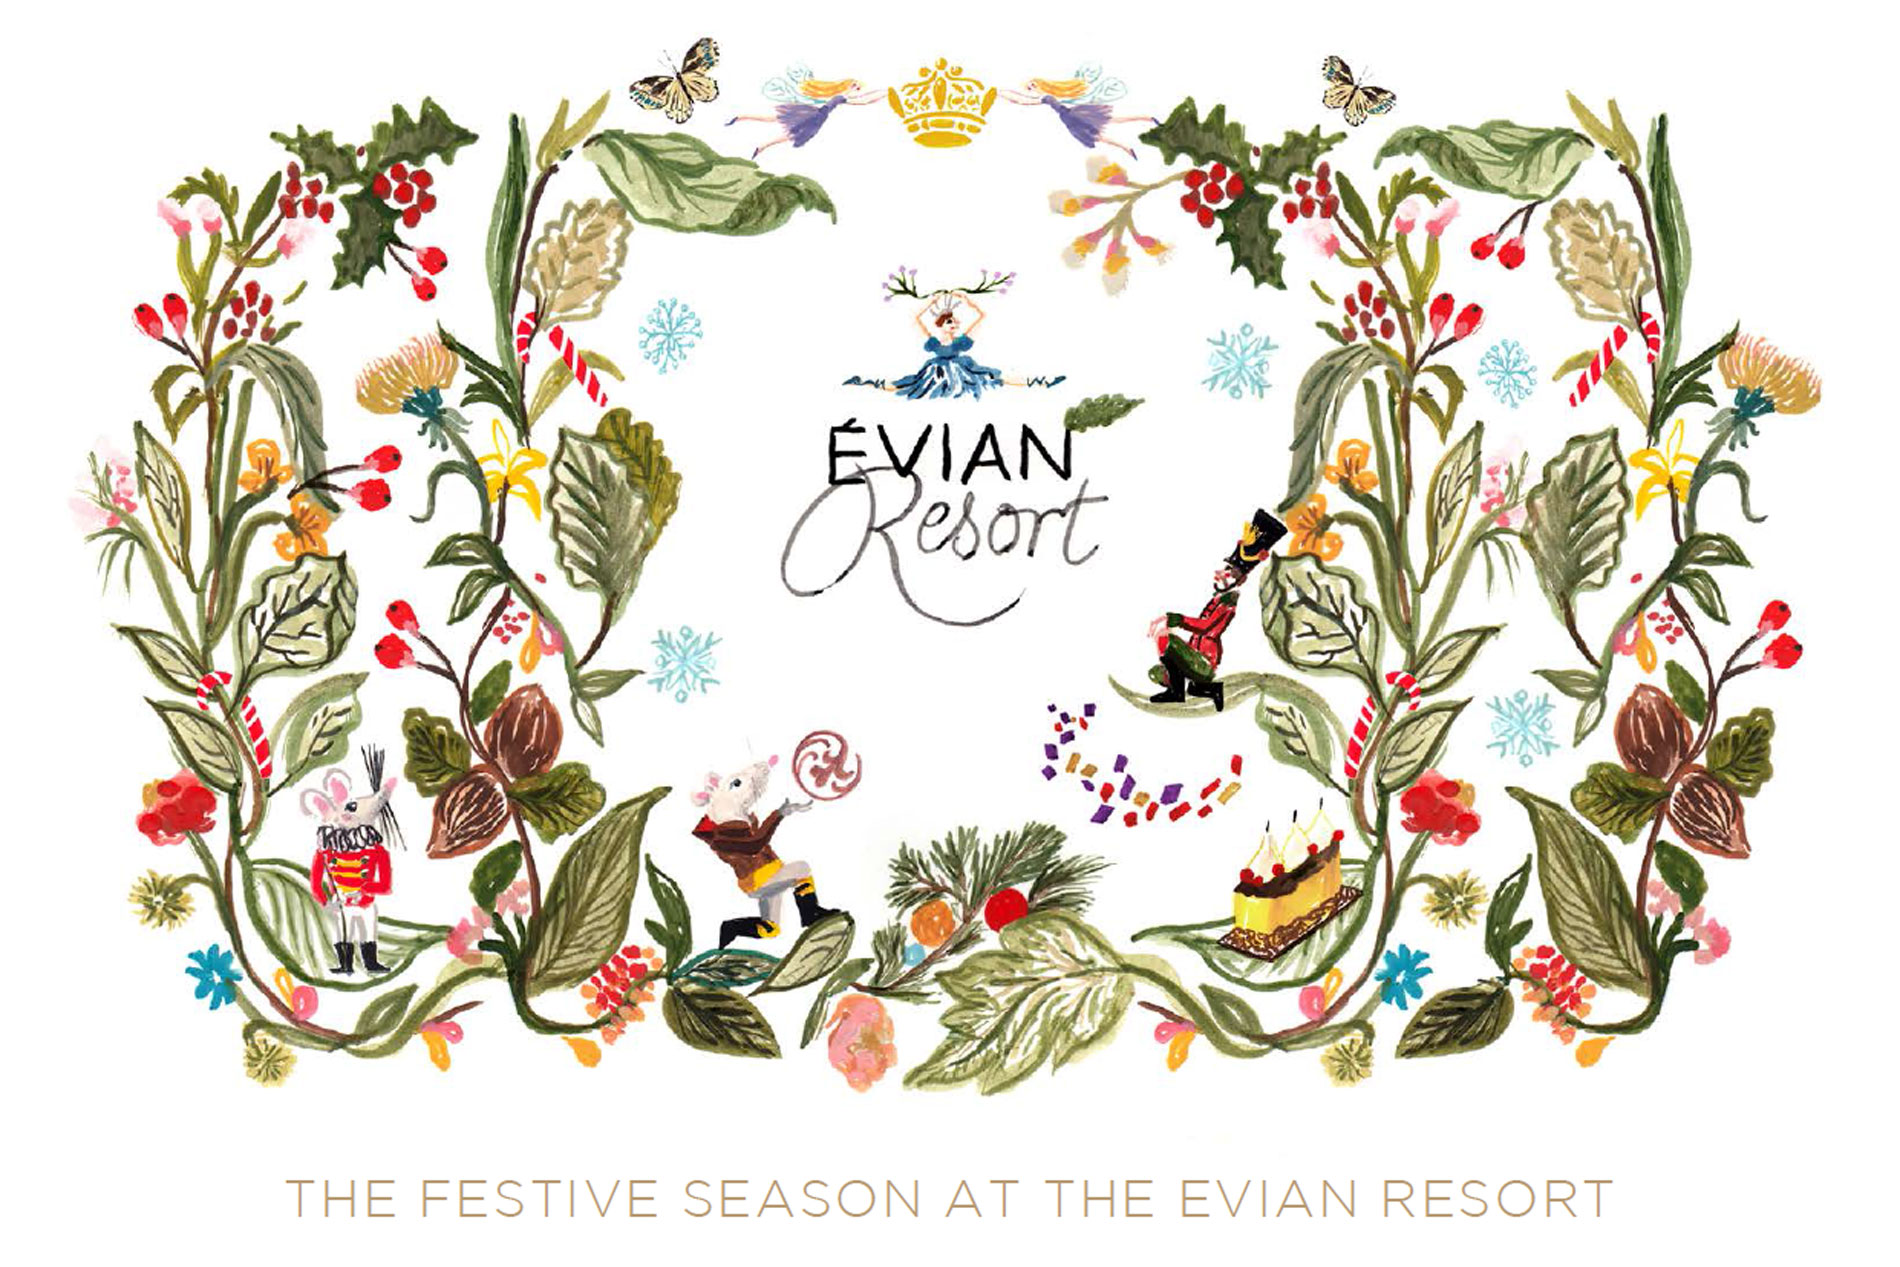 Evian Resort